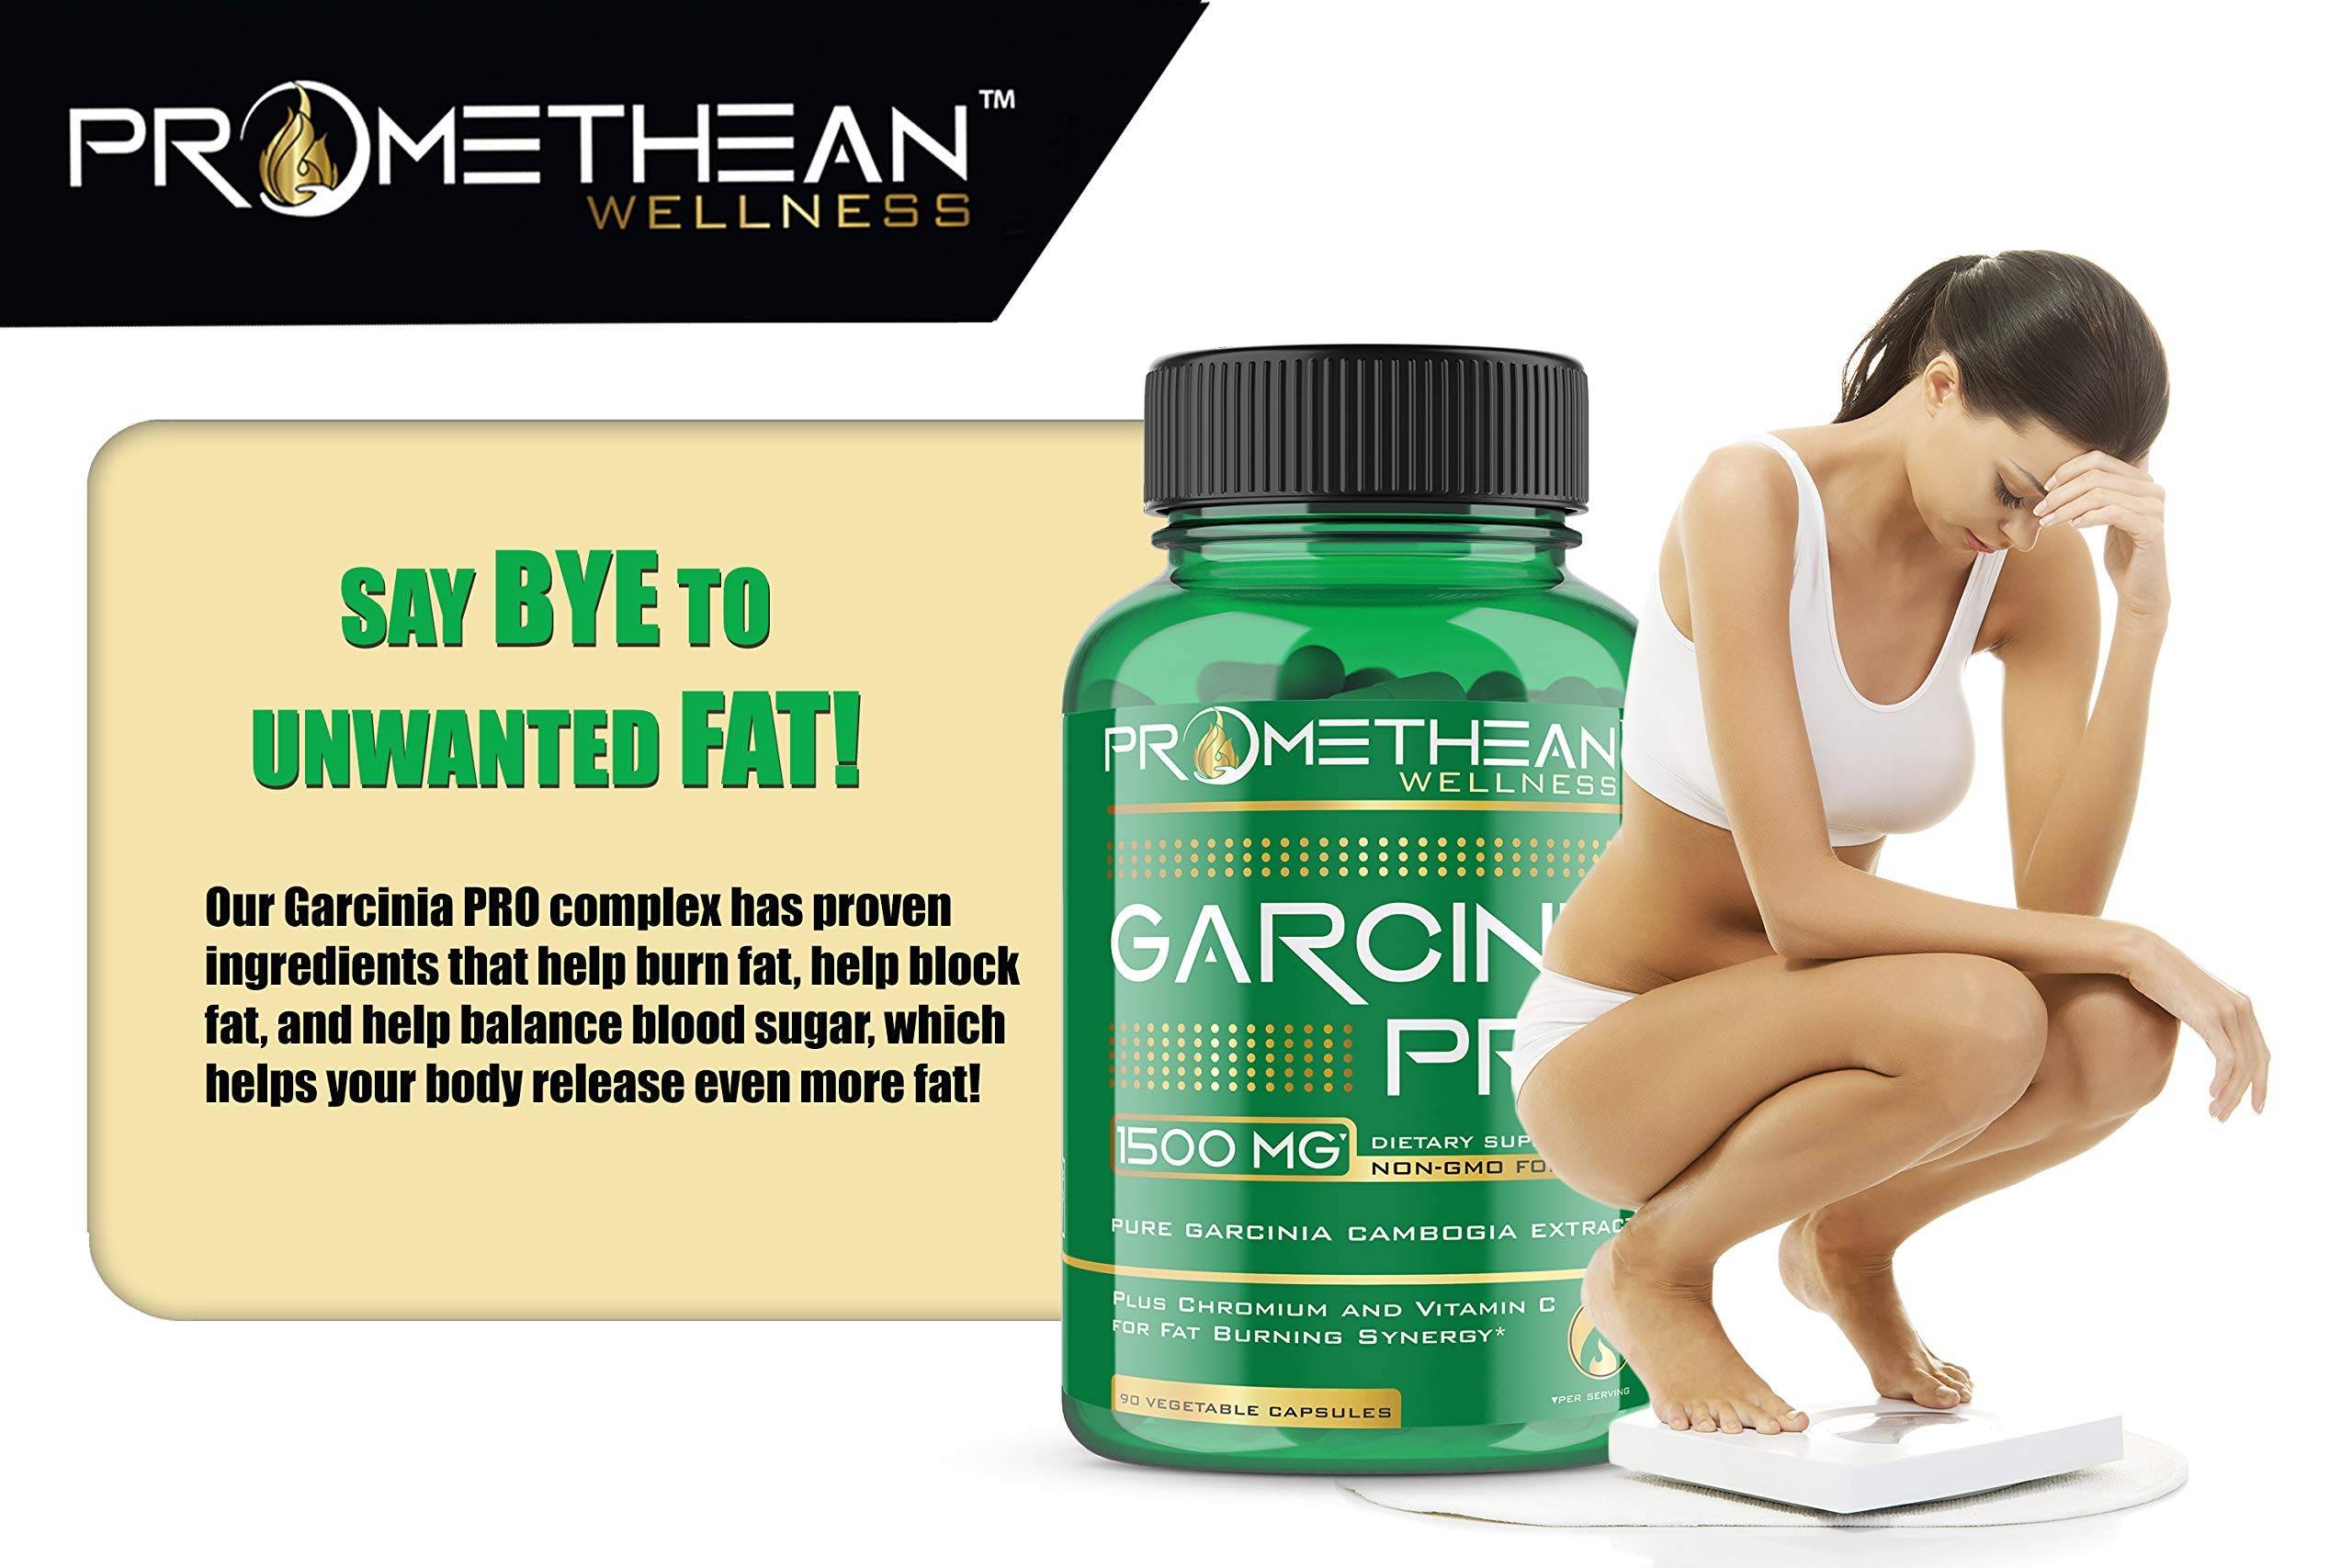 Garcinia PRO 100% Pure Garcinia Cambogia Extract for Weight Loss 1500mg Lose Fast Best Belly Fat Burner Pills Ultra Premium Natural HCA Metabolism Booster Carb Blocker Curb Appetite 90 capsules by Promethean Wellness LLC (Image #2)